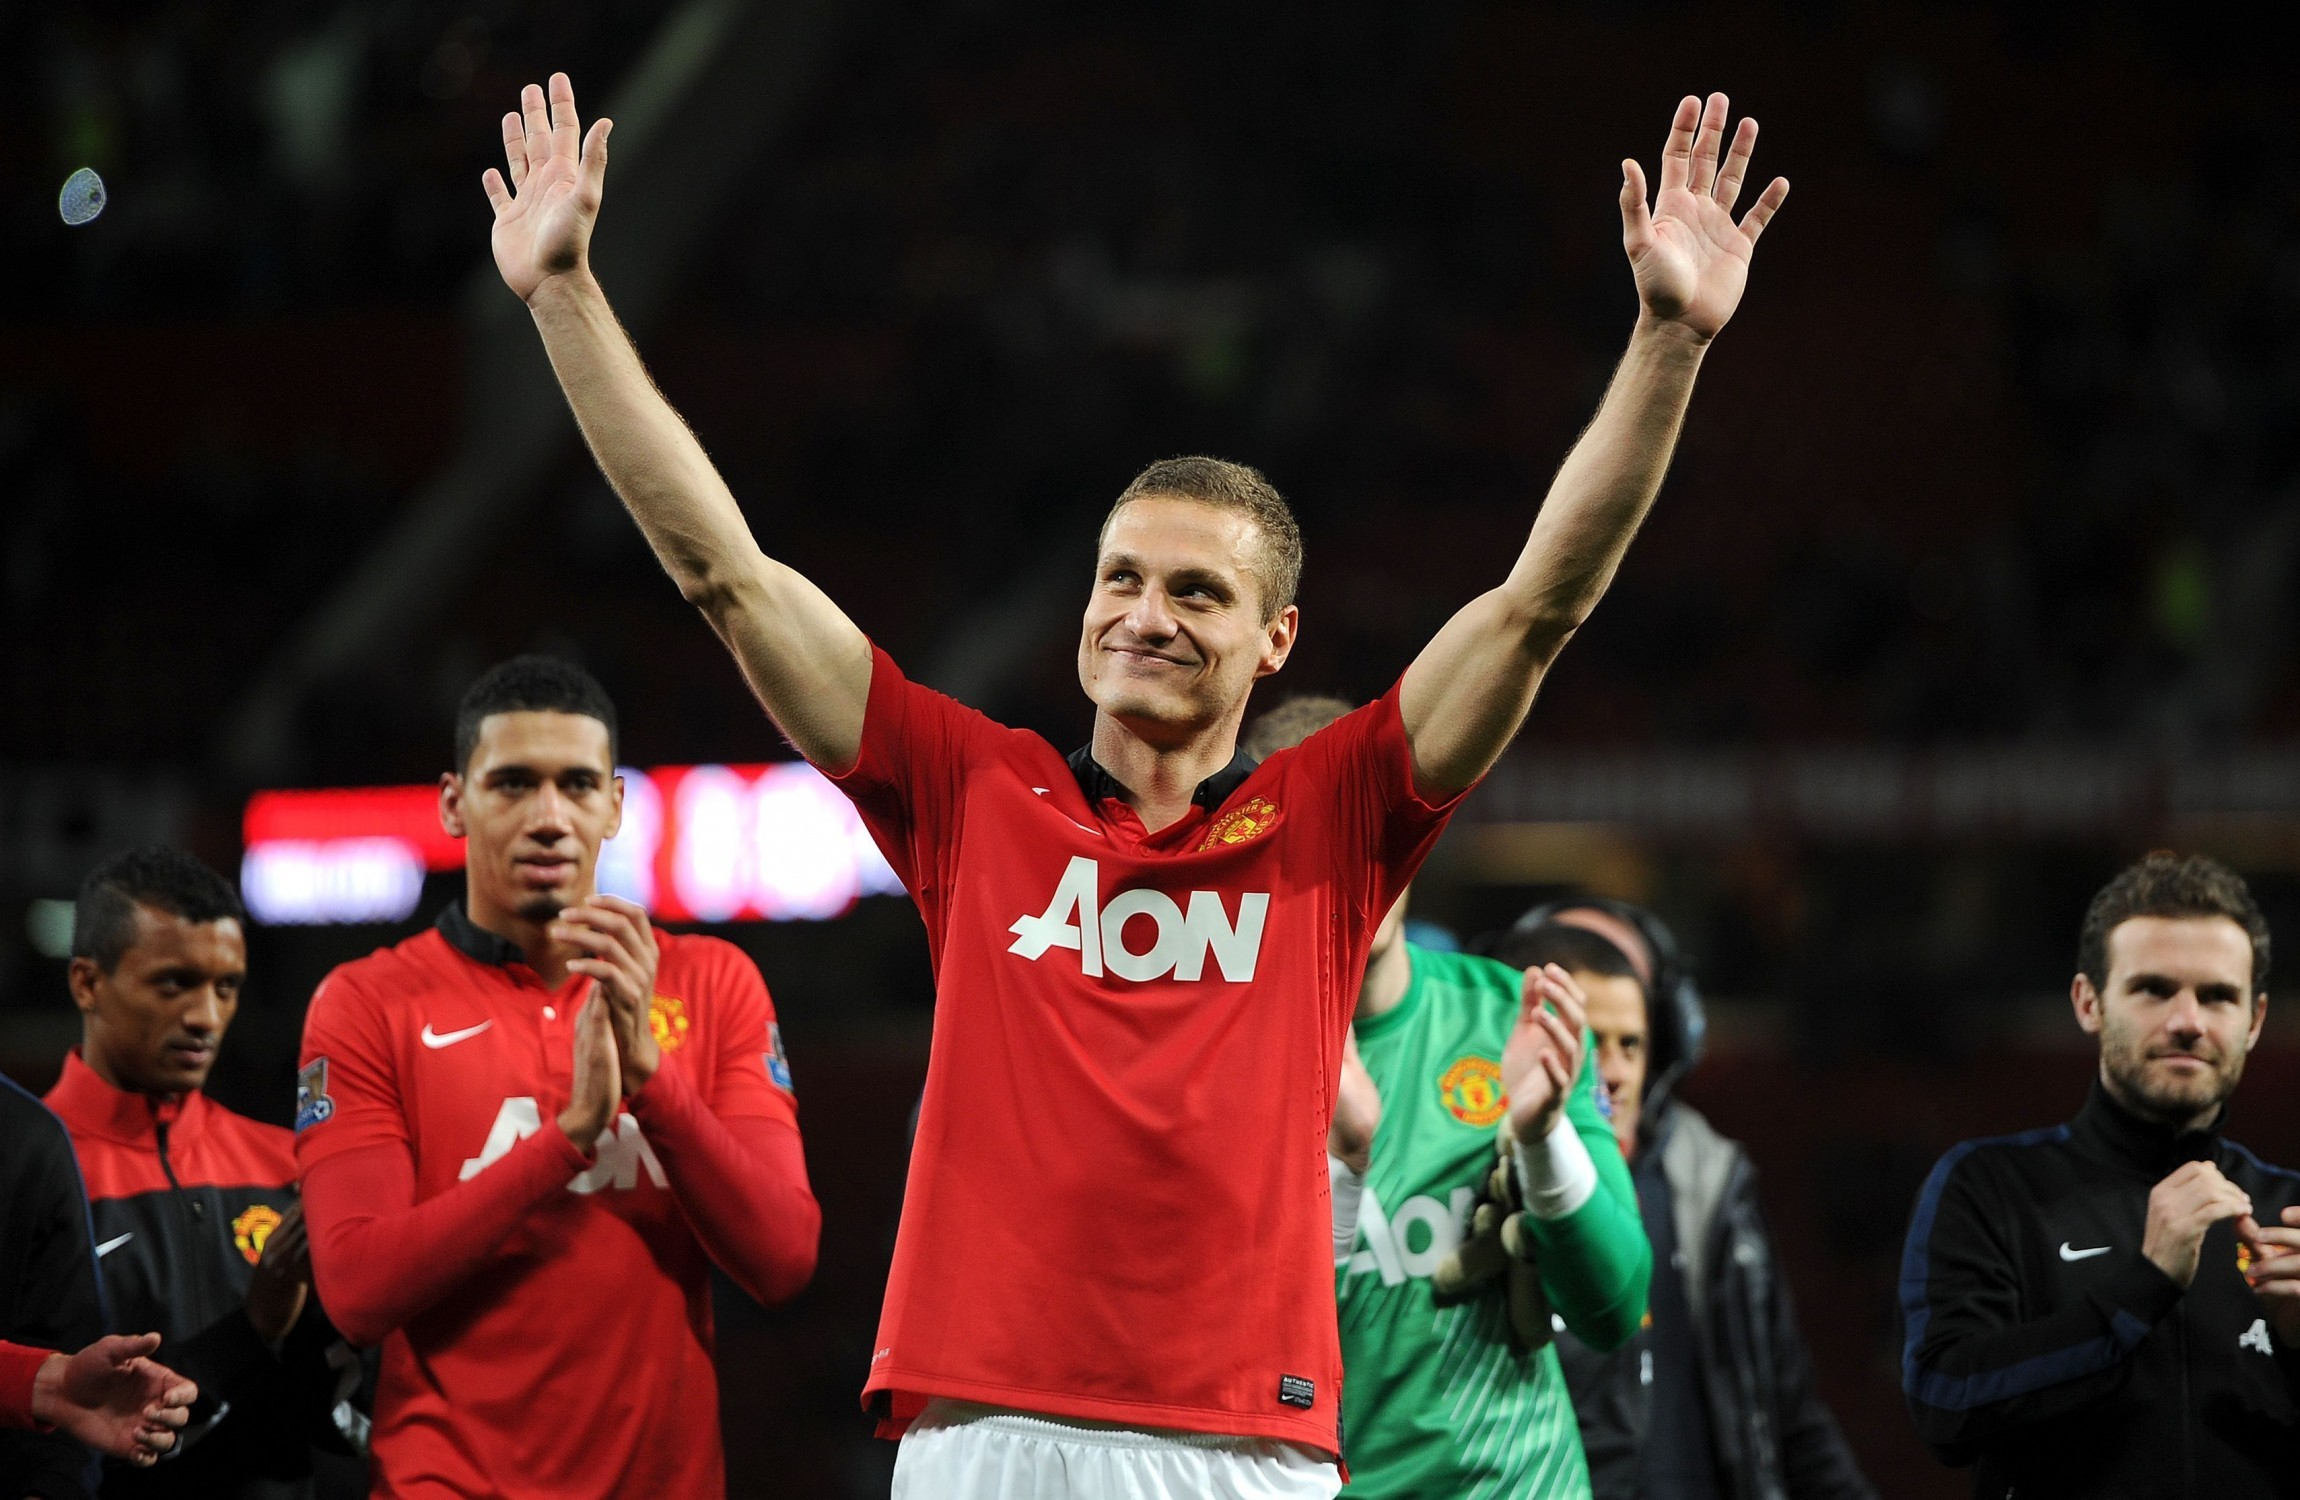 Former Man United captain Nemanja Vidic has retired from football